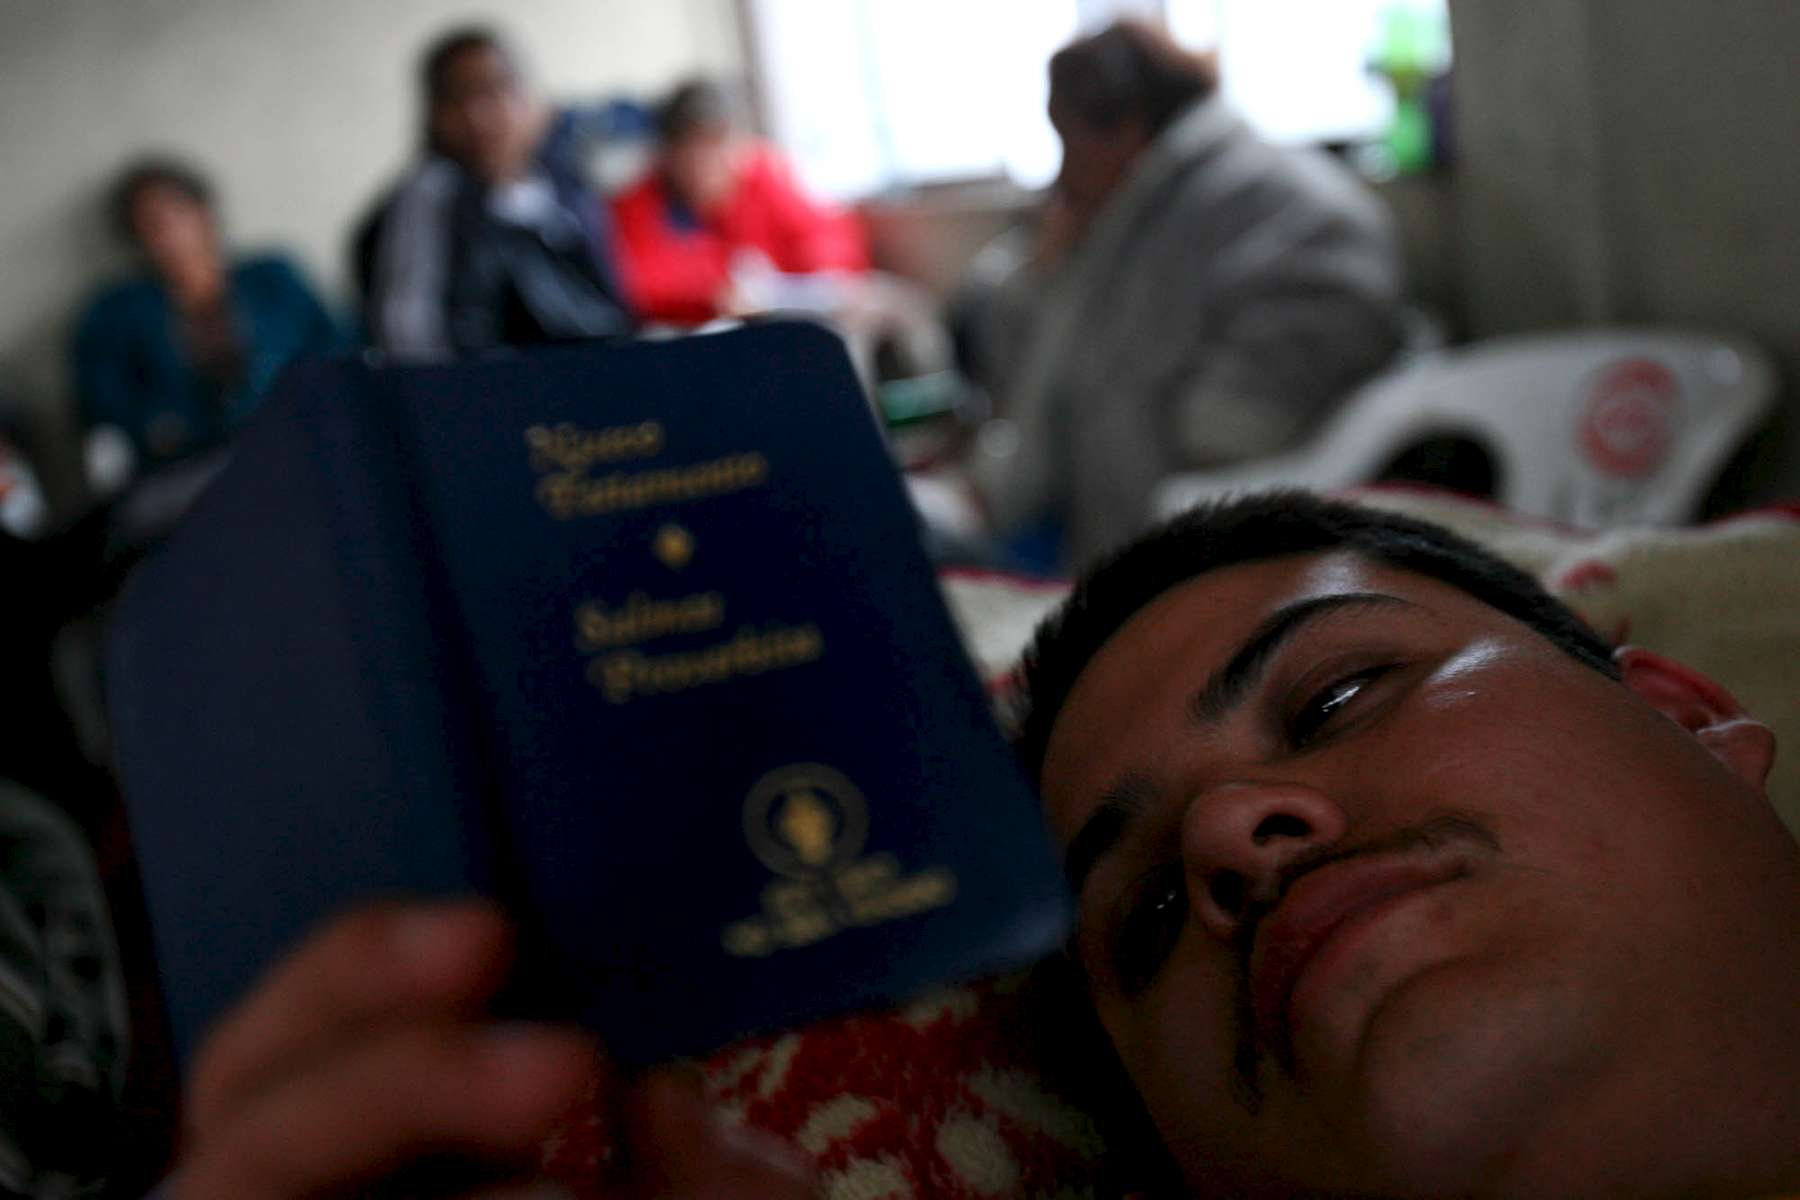 Norberto Guzman, 28, reads the bible as he rests in front of the Pasta de Conchos coal mine where his brother is trapped in San Juan de Sabinas in the Mexican state of Coahuila Thursday. Family members waited outside the Pasta de Conchos coal mine Thursday. In the Early morning on Sunday 65 miners were trapped as much as 2000 feet below ground after an explosion.Sharón Steinmann / Houston Chronicle